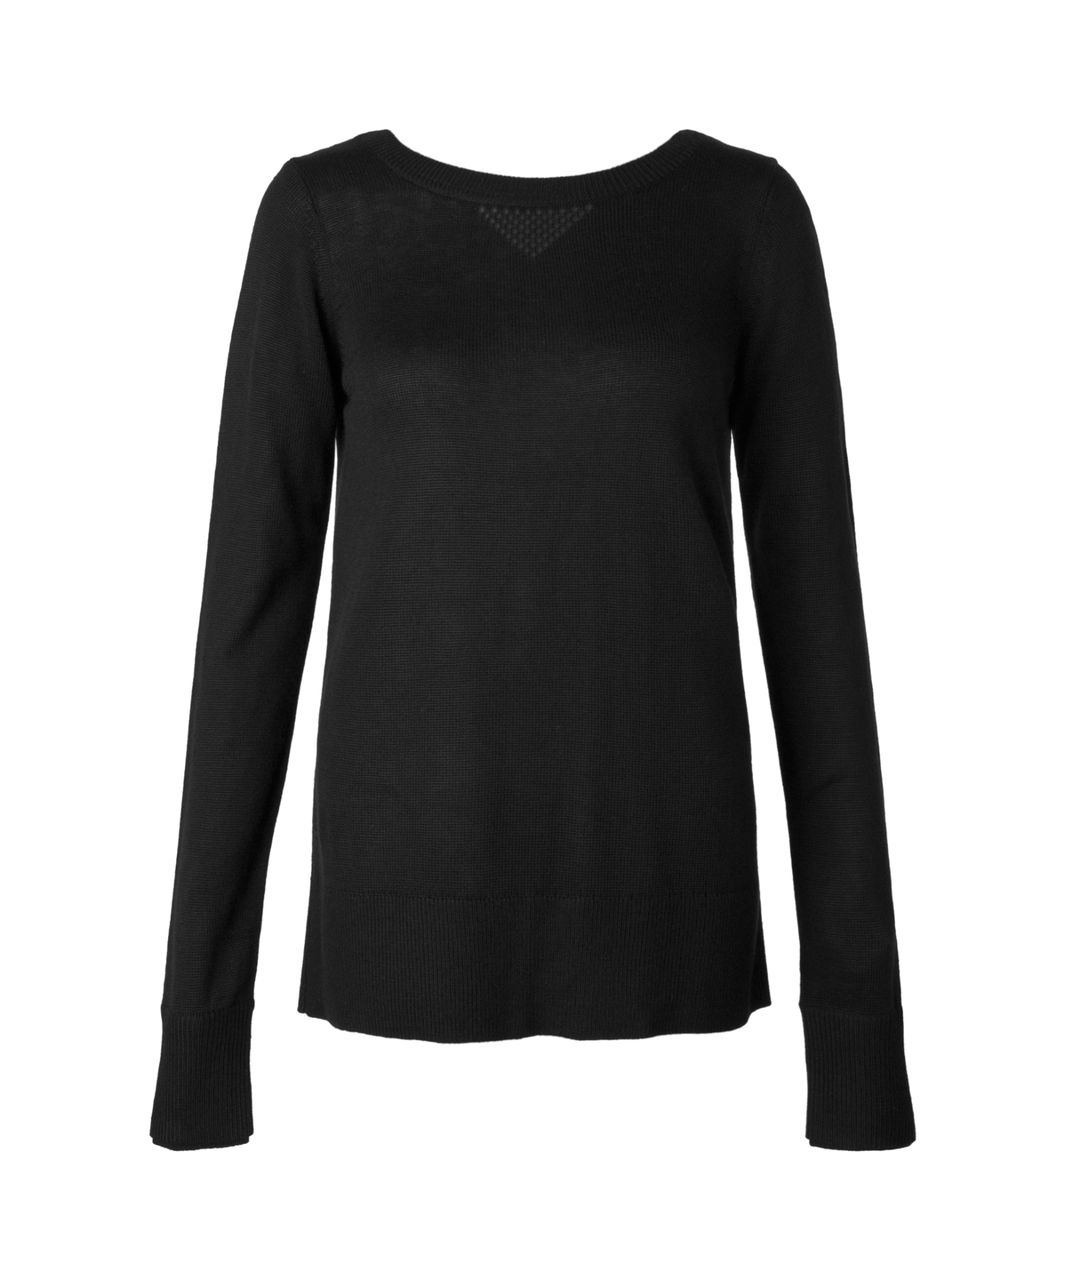 Lululemon Sunset Savasana Pullover II - Black